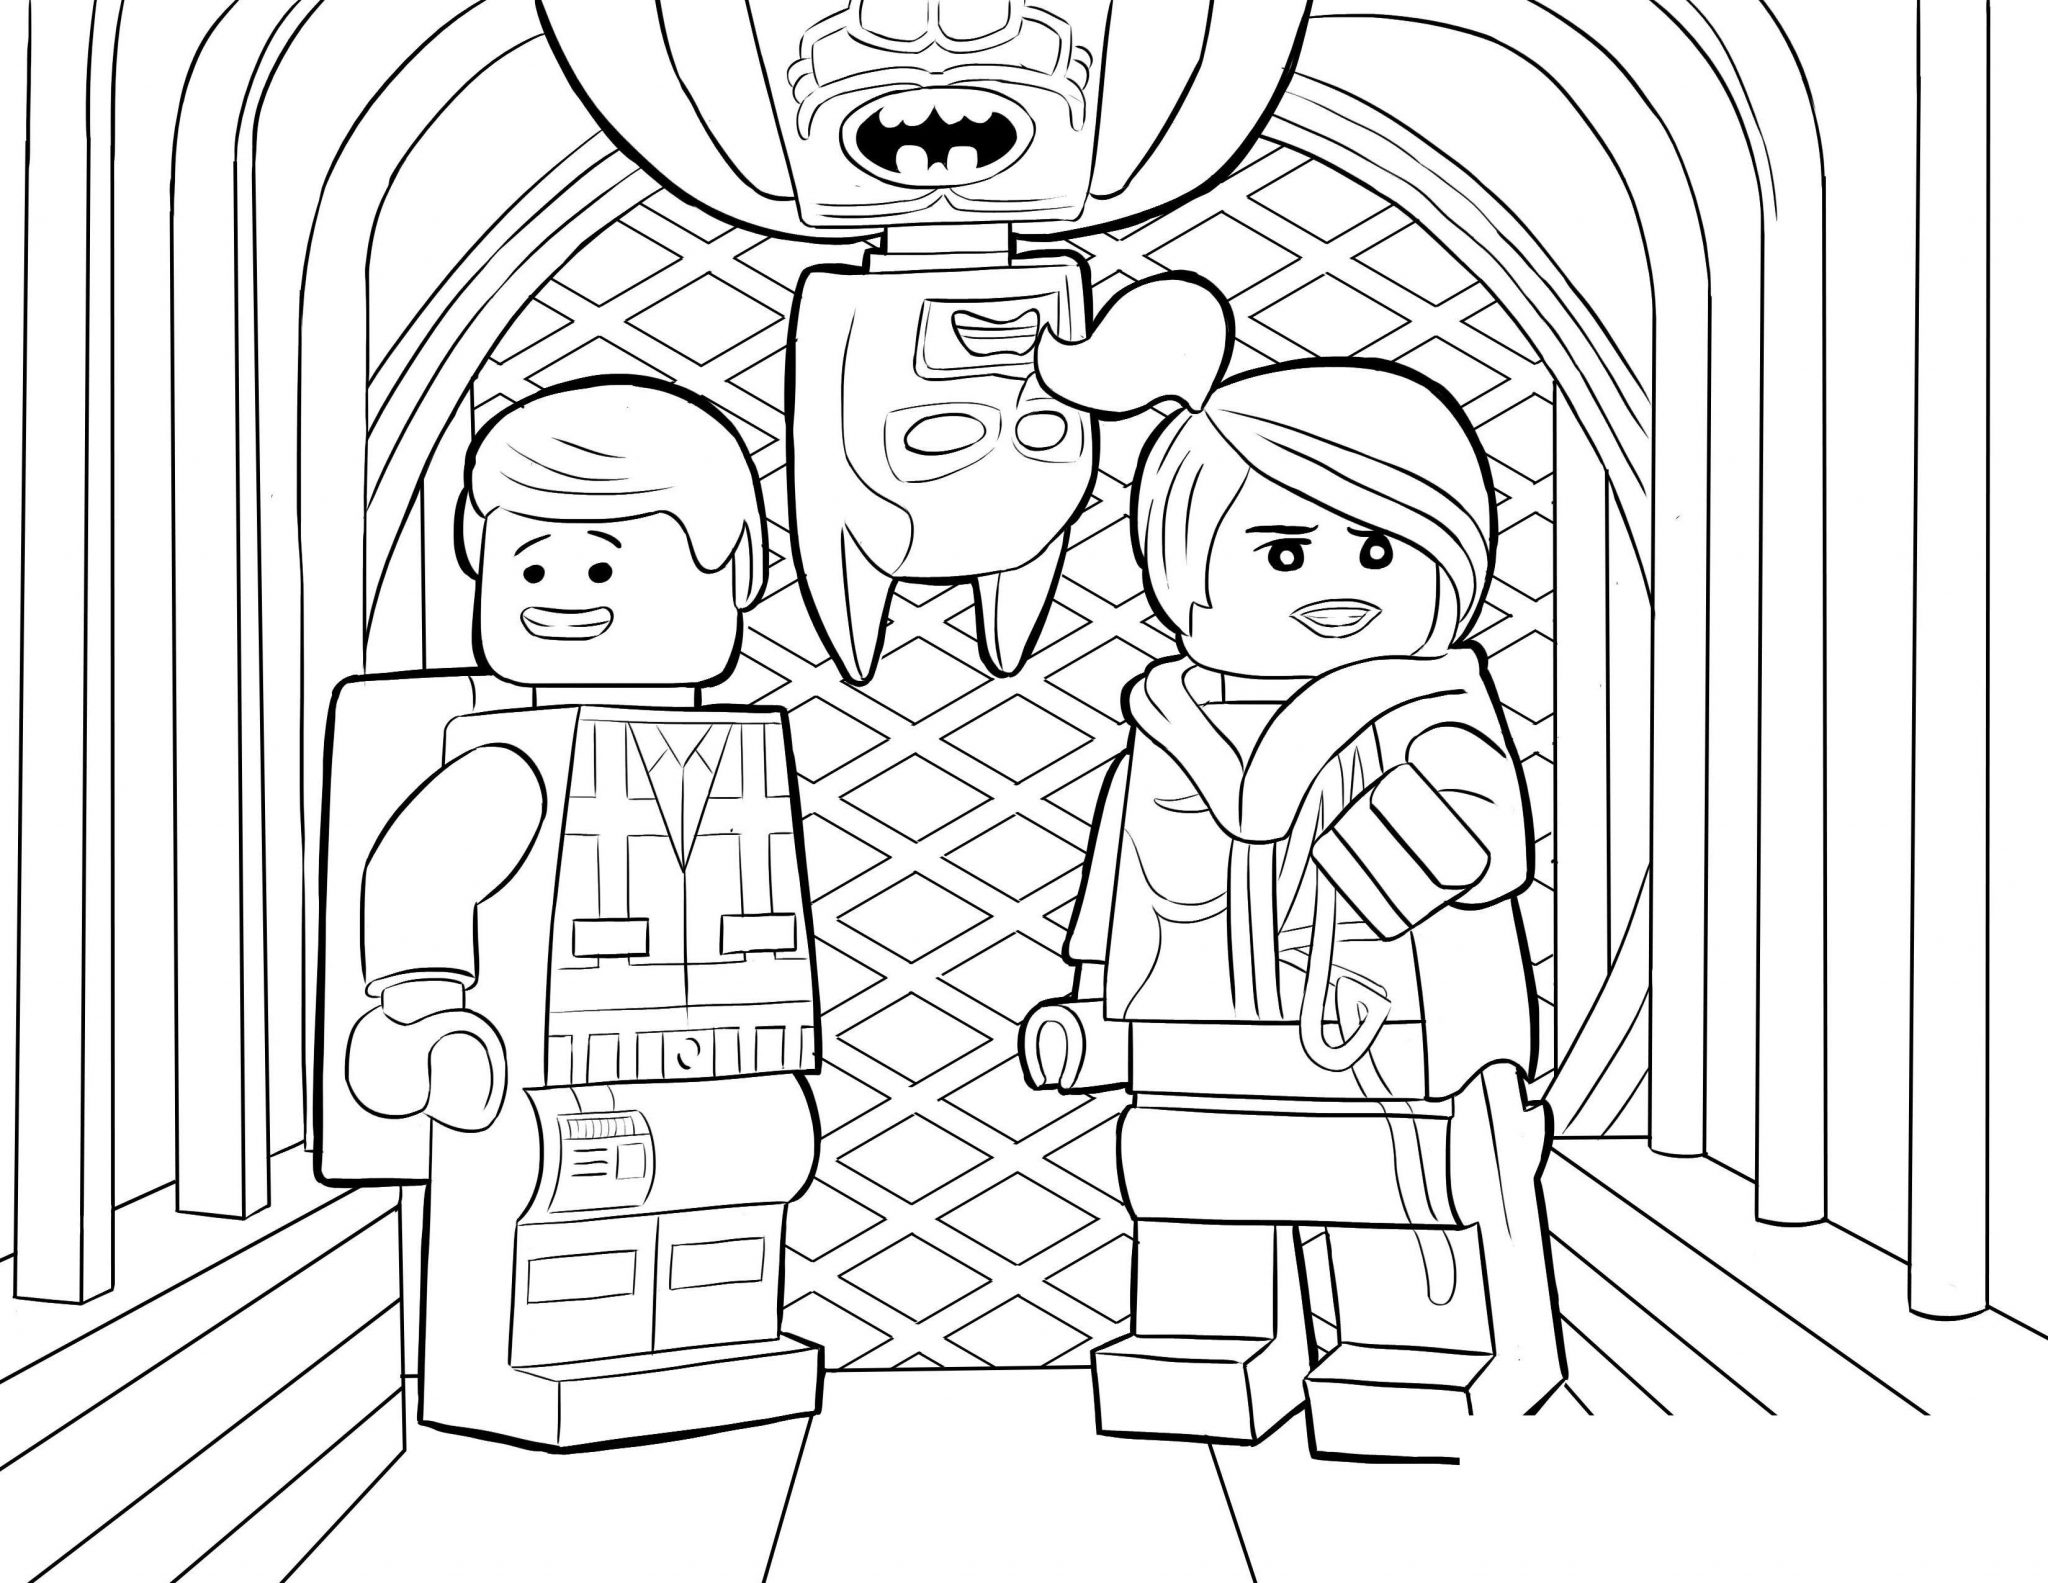 Free New LEGO Ninjago Coloring Pages for Boys printable